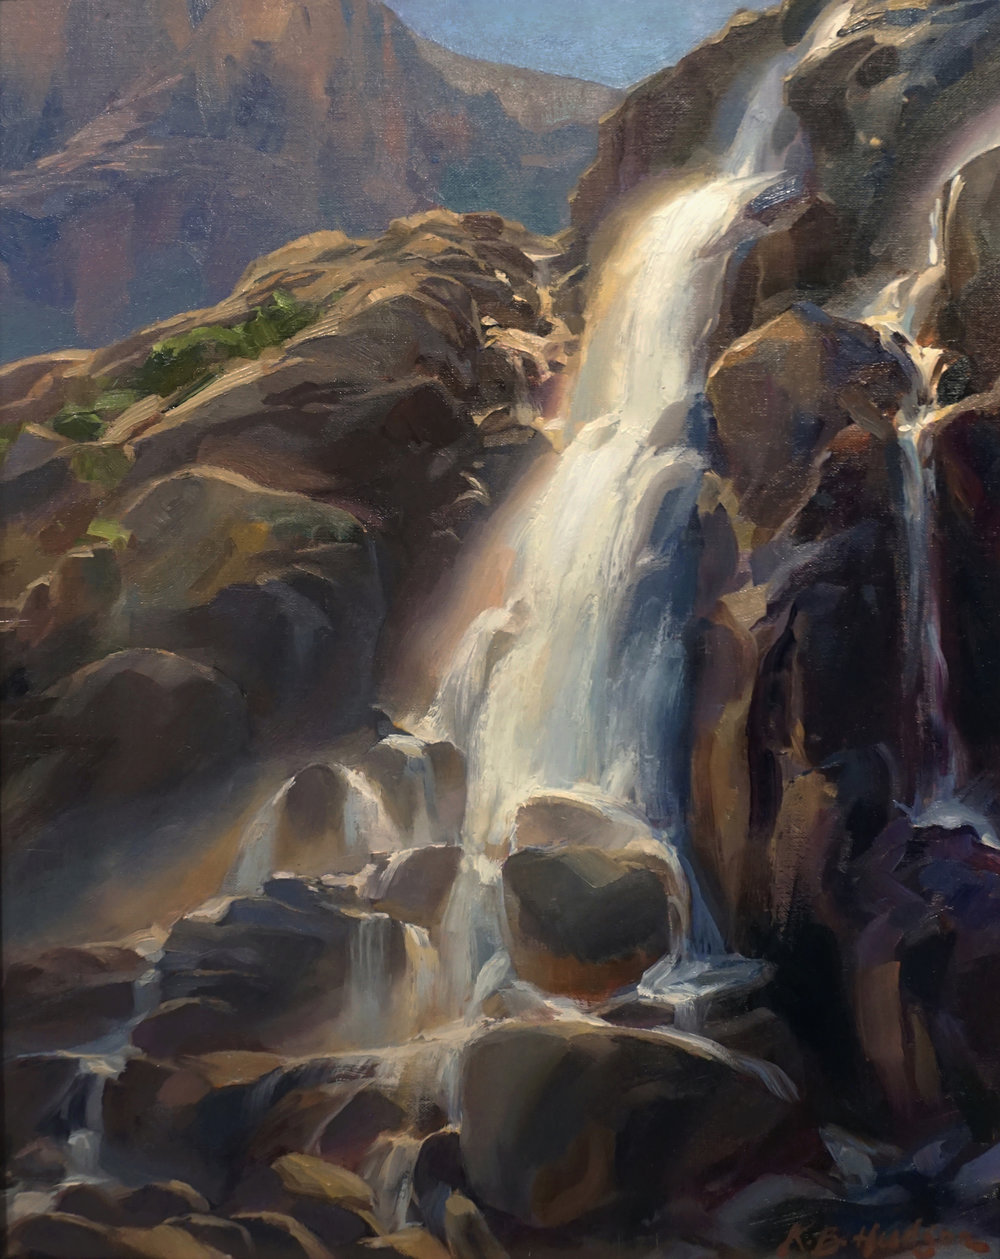 Bright Morning, Timberline Falls (2016) Oil on linen panel, 18 x 14 in. plein air